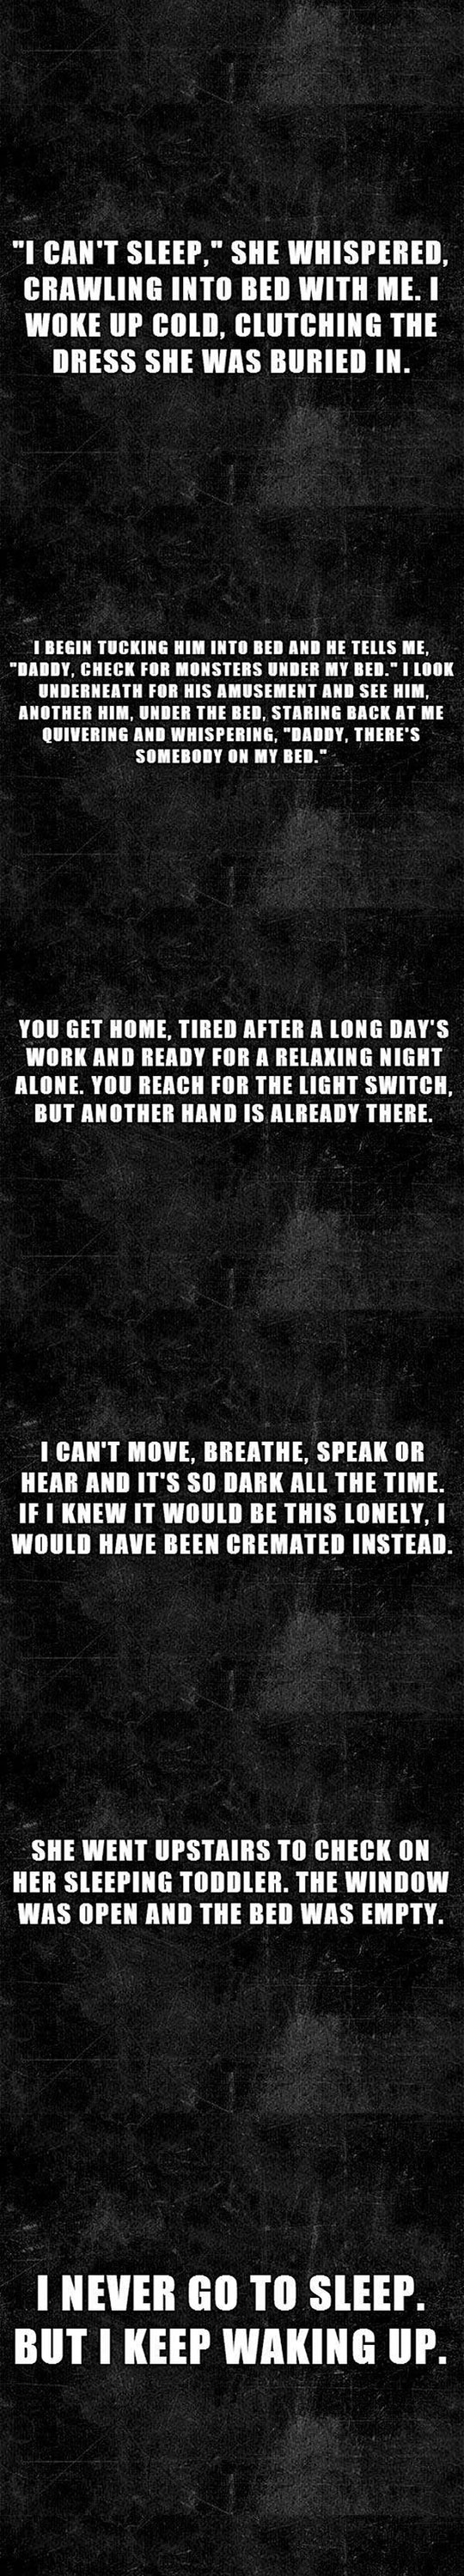 funny-cool-night-scary-horror-stories